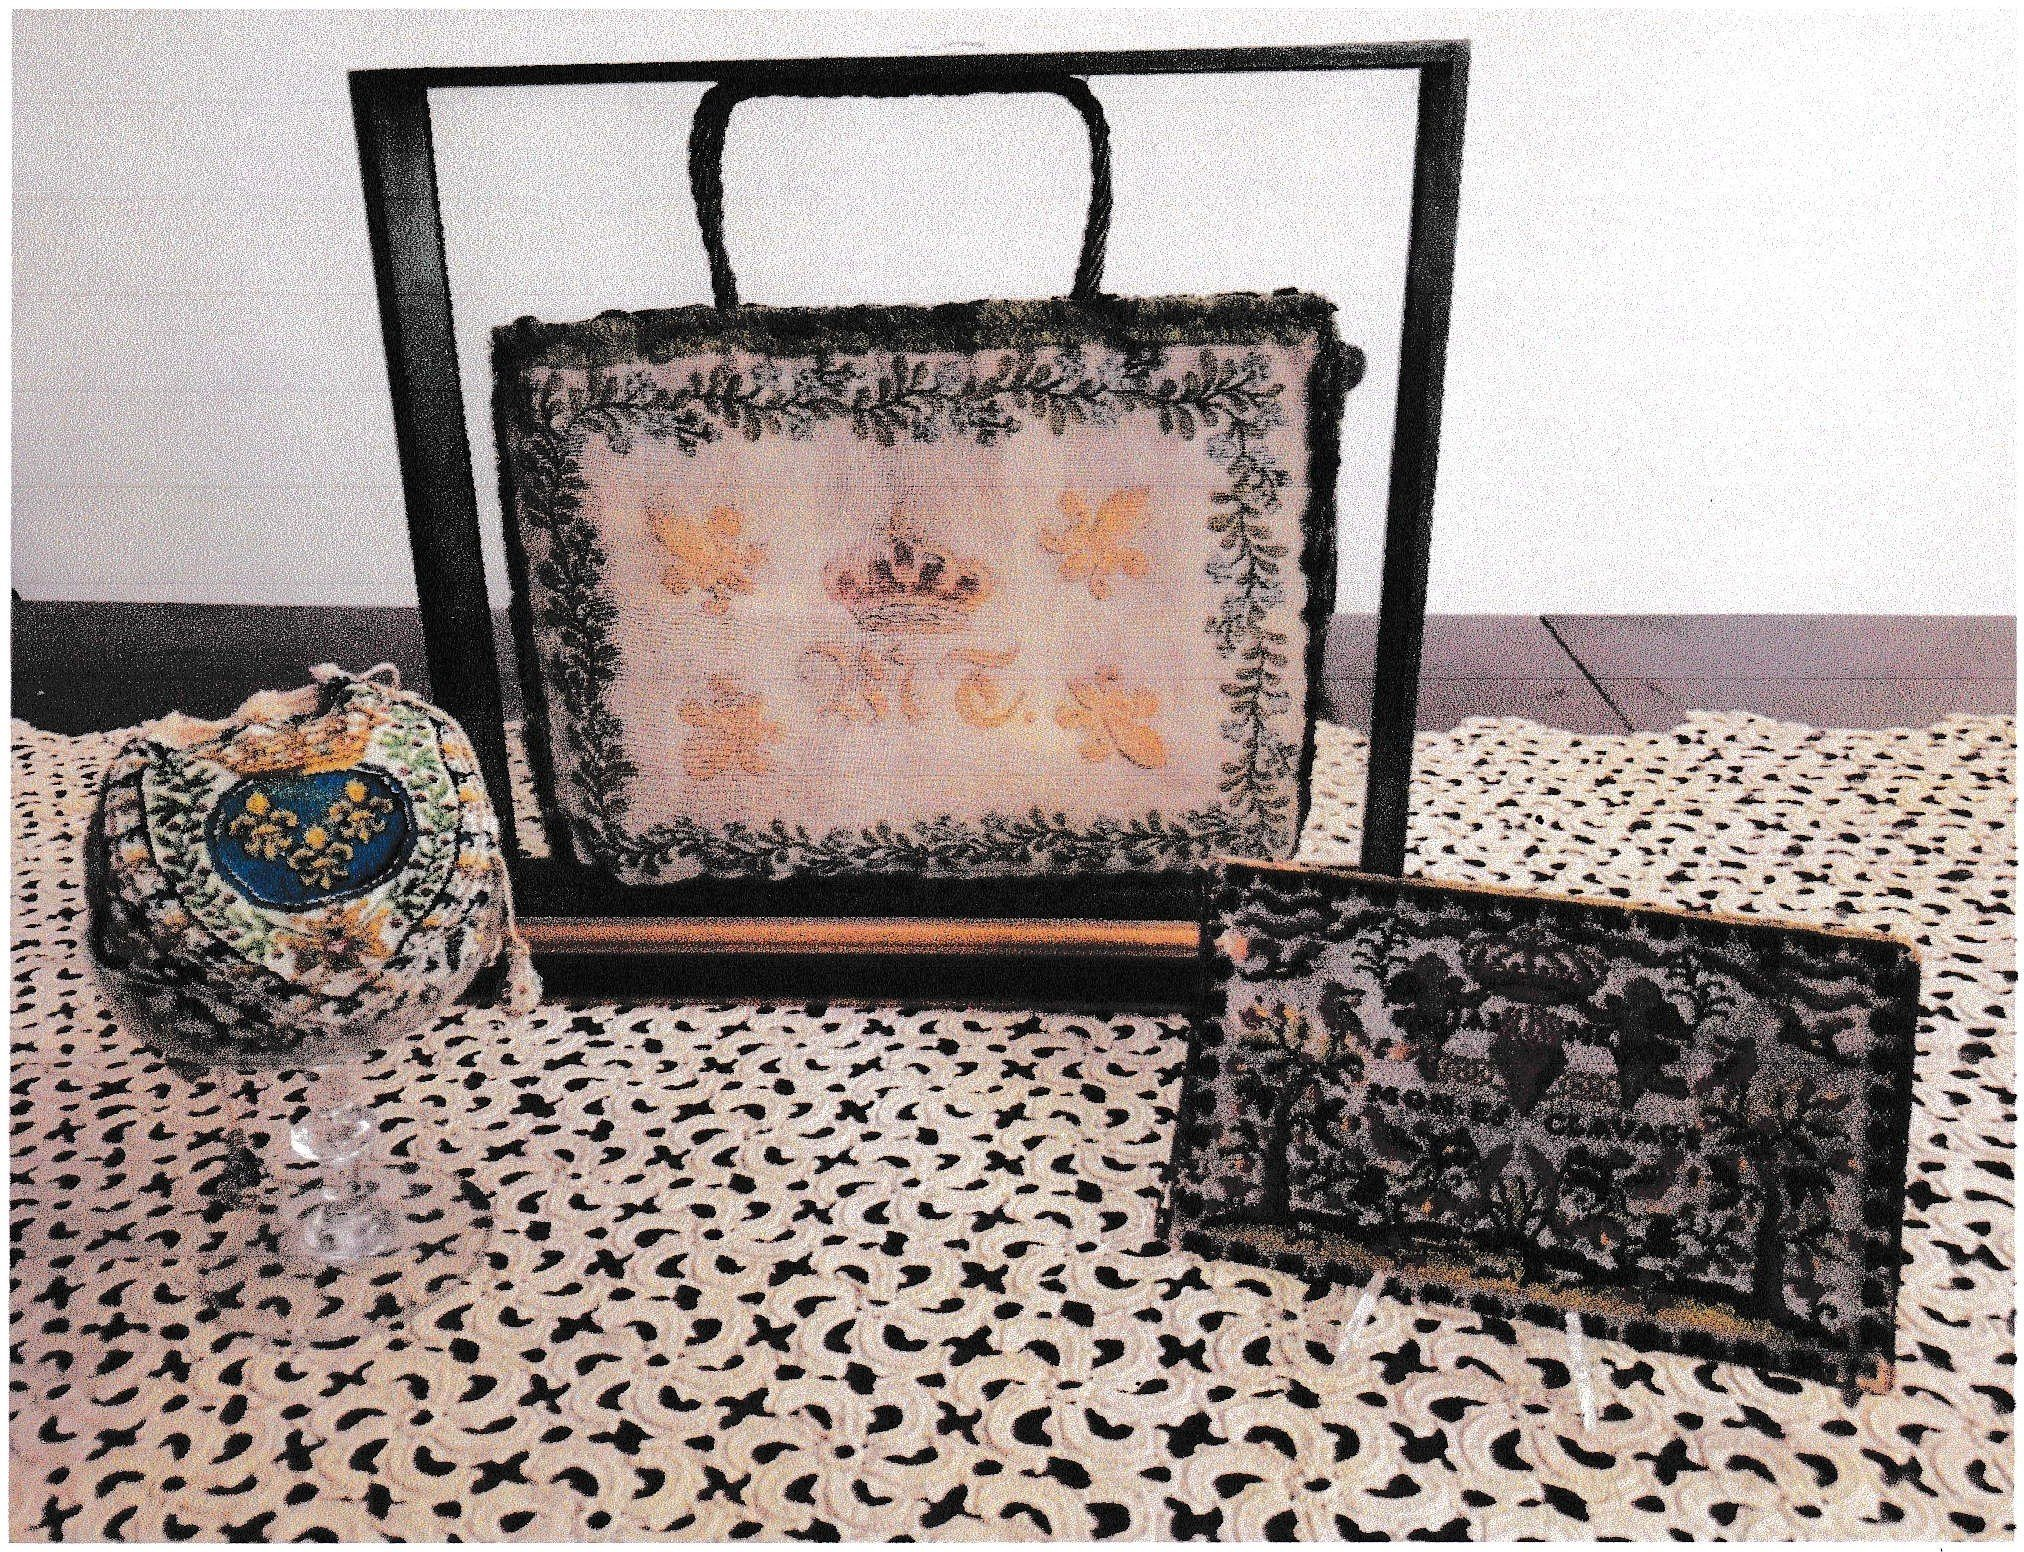 A Family Reunion: Marie Antoinette and a Trio of Royal Purses by Barbara Catanese